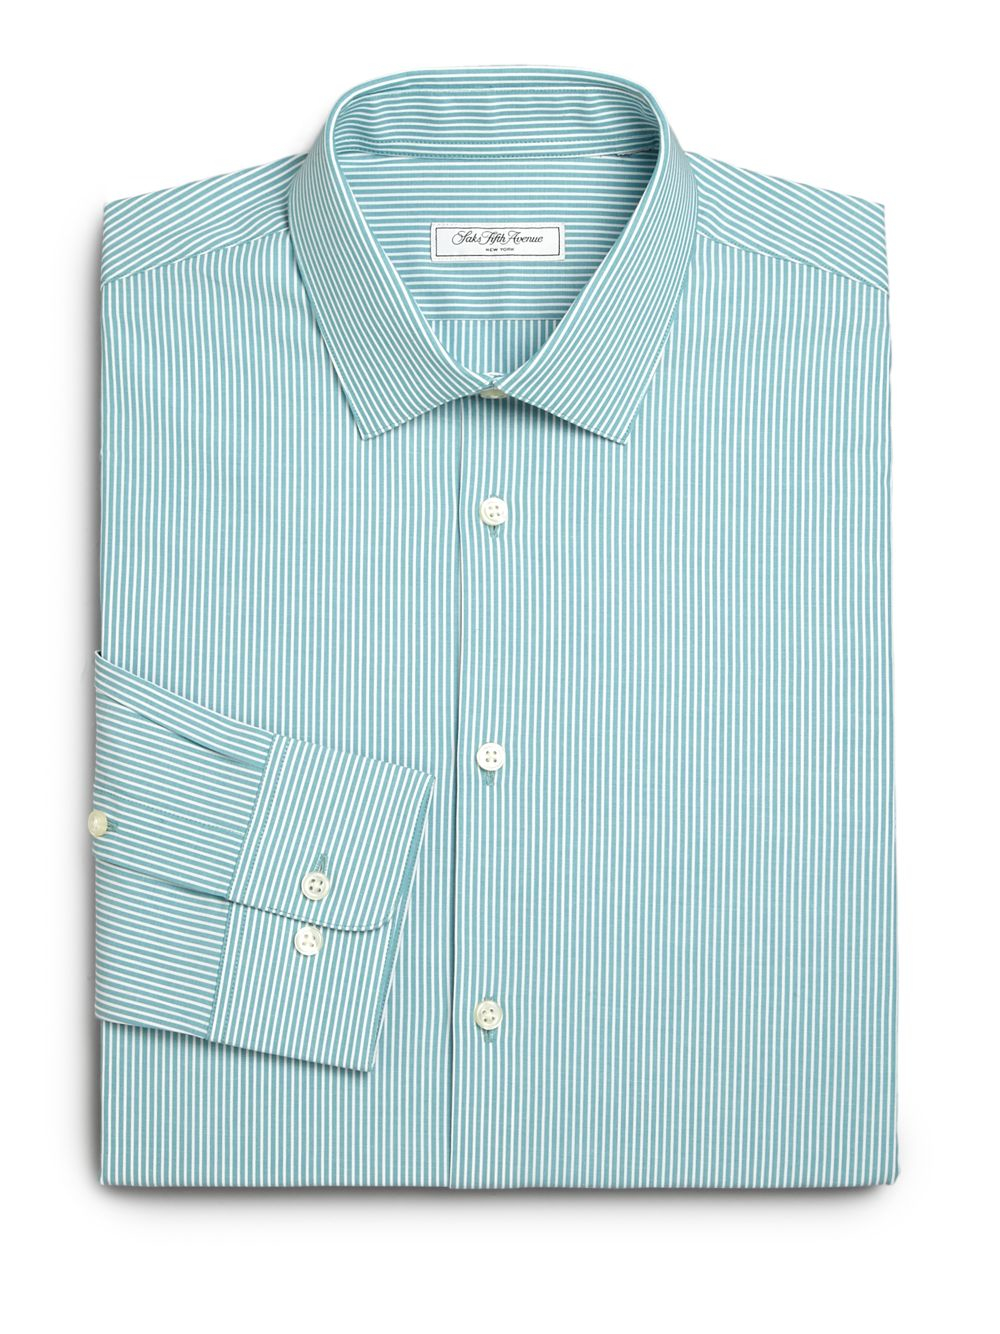 Saks fifth avenue modern fit bengal striped dress shirt in for Modern fit dress shirt